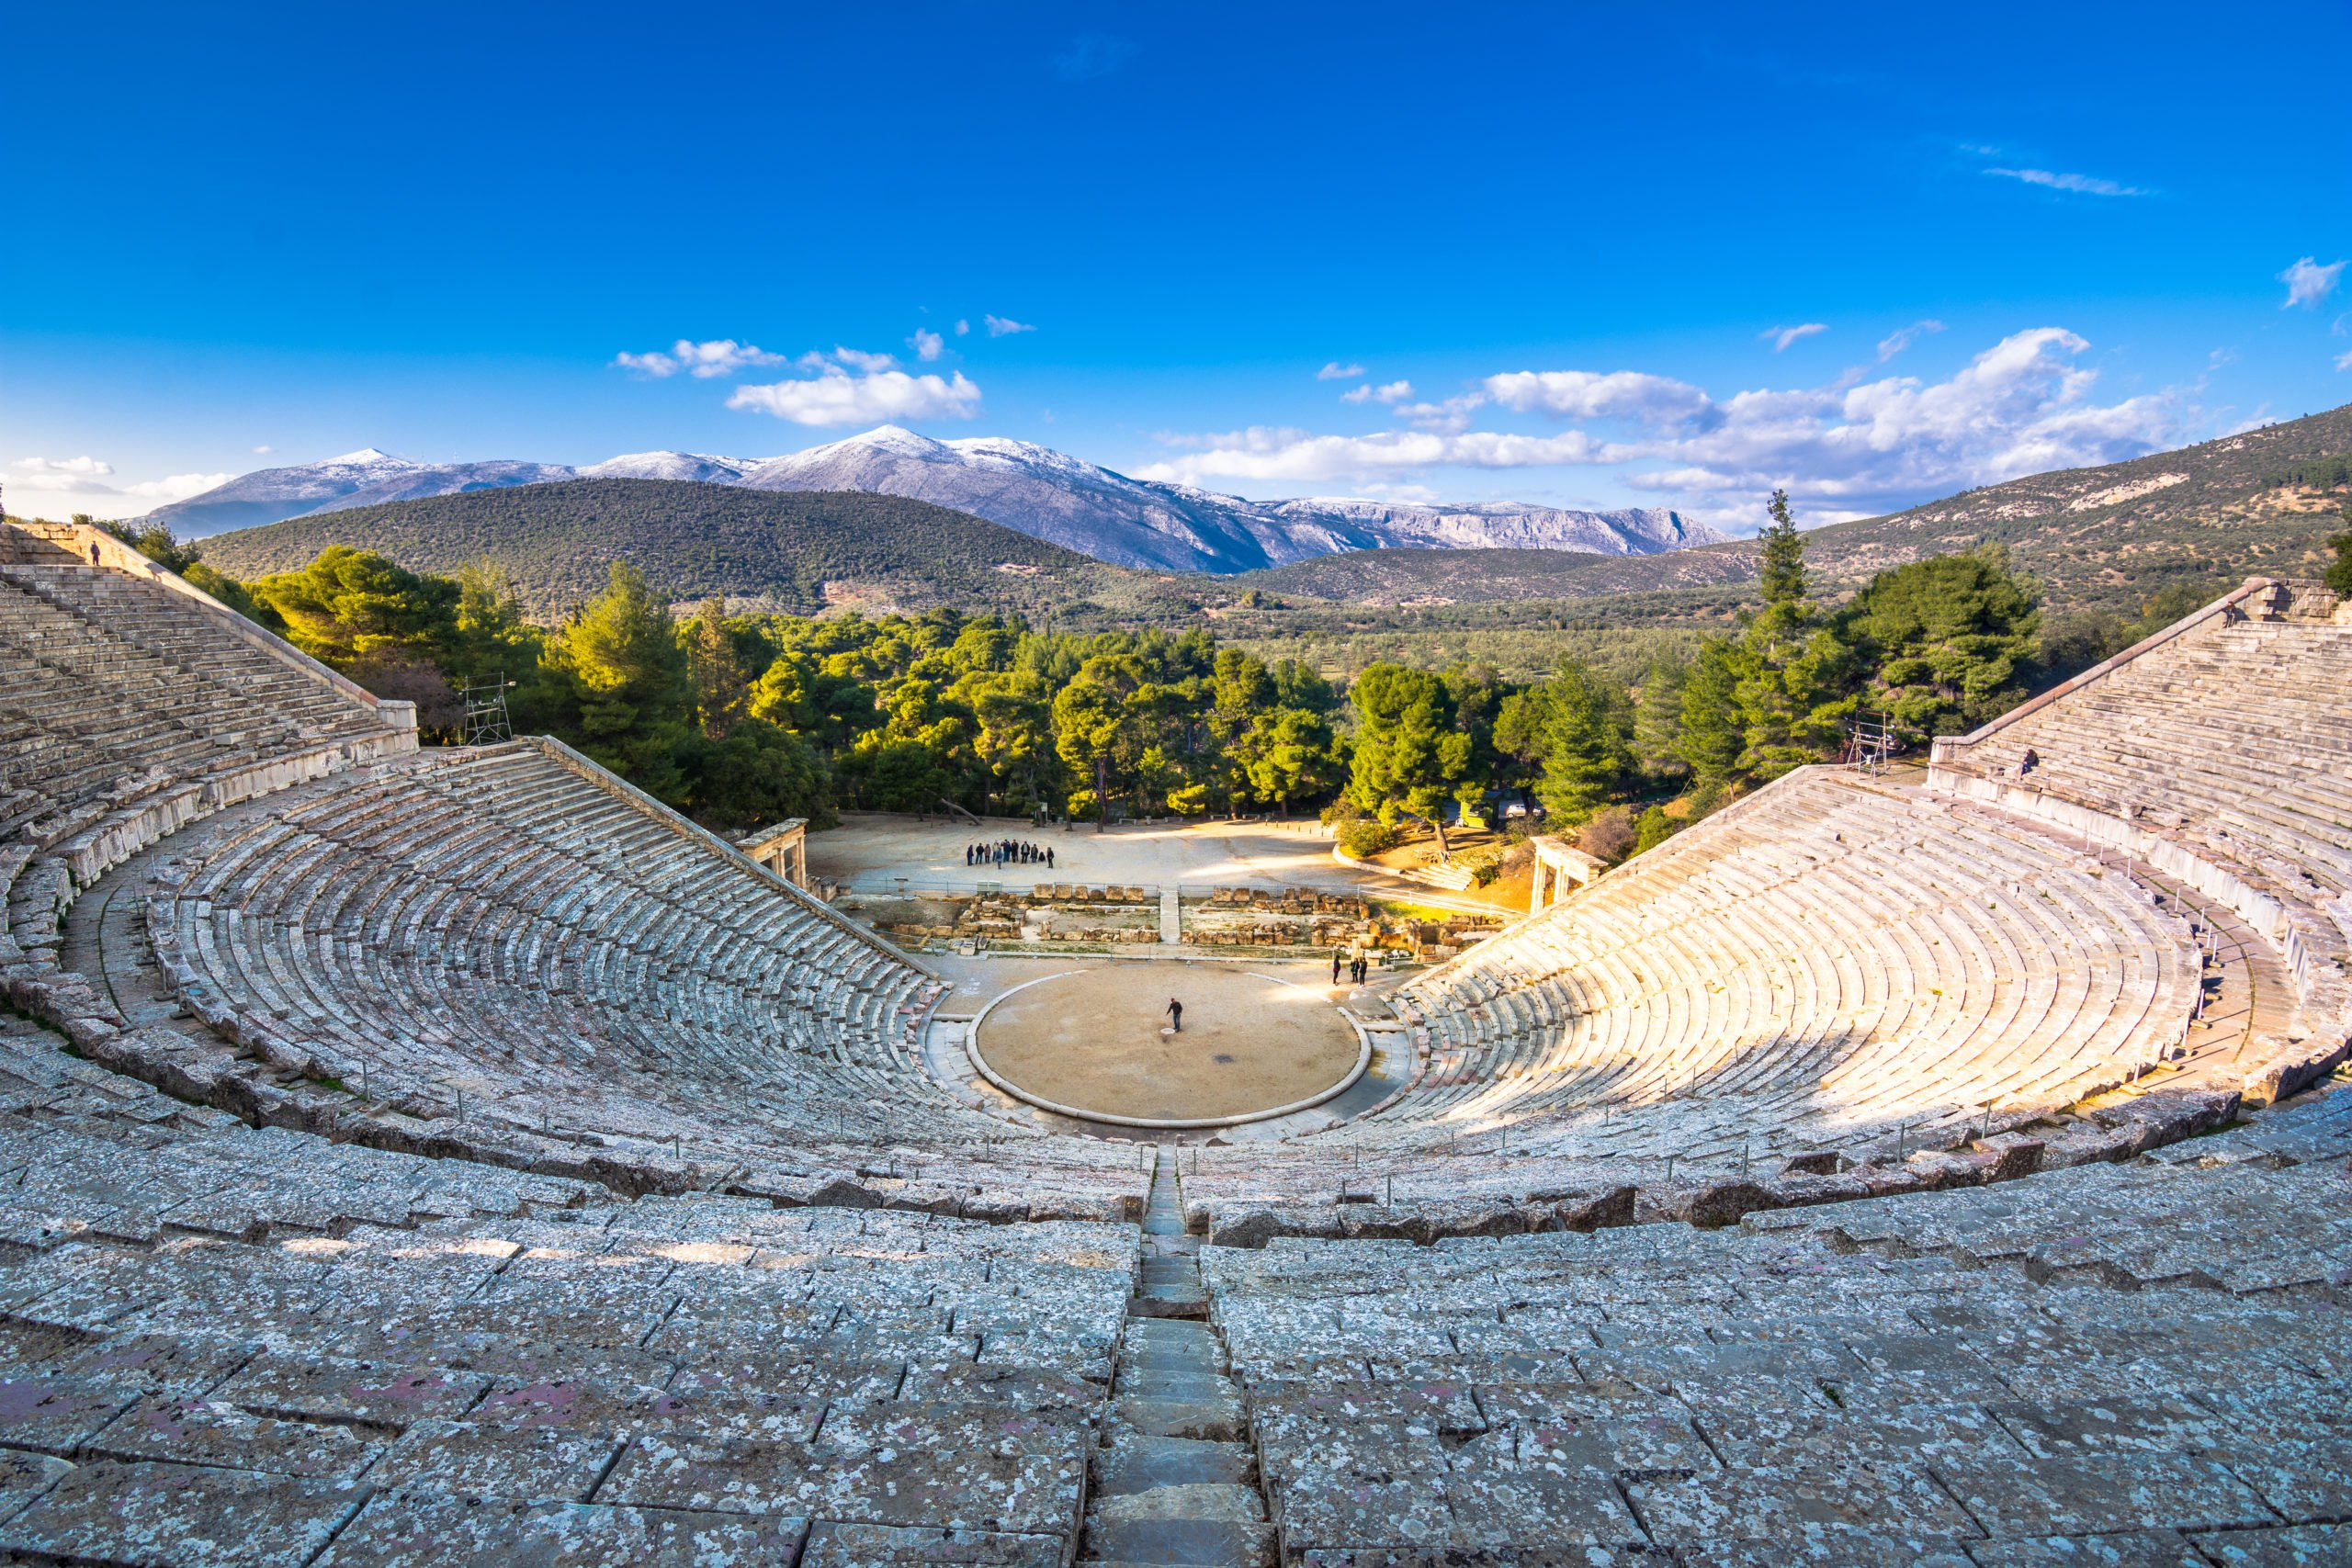 Discover The Marvelous Theater Of Epidaurus On The On The Greece 4 Day Tour Package From Athens